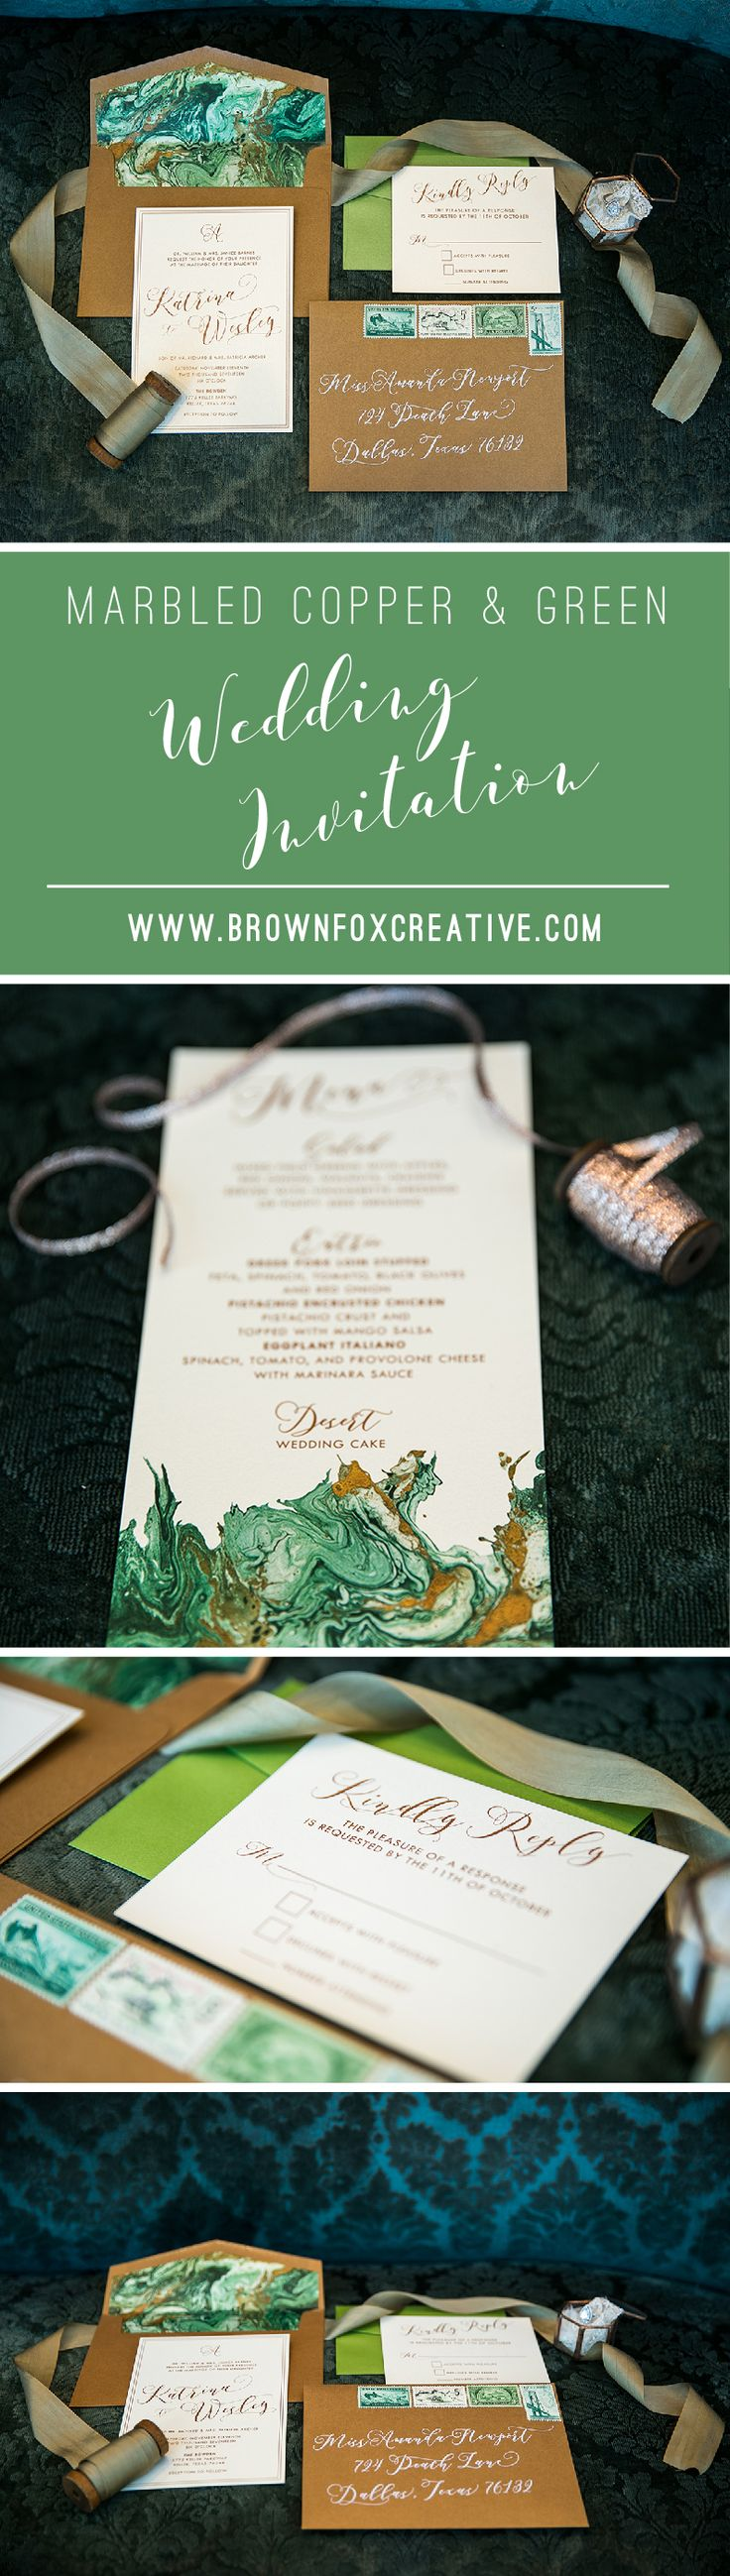 print yourself wedding invitations kit%0A Shades of Green  u     Copper Marble  Rose Gold and Ivory Wedding Invitation  u      Includes Envelope